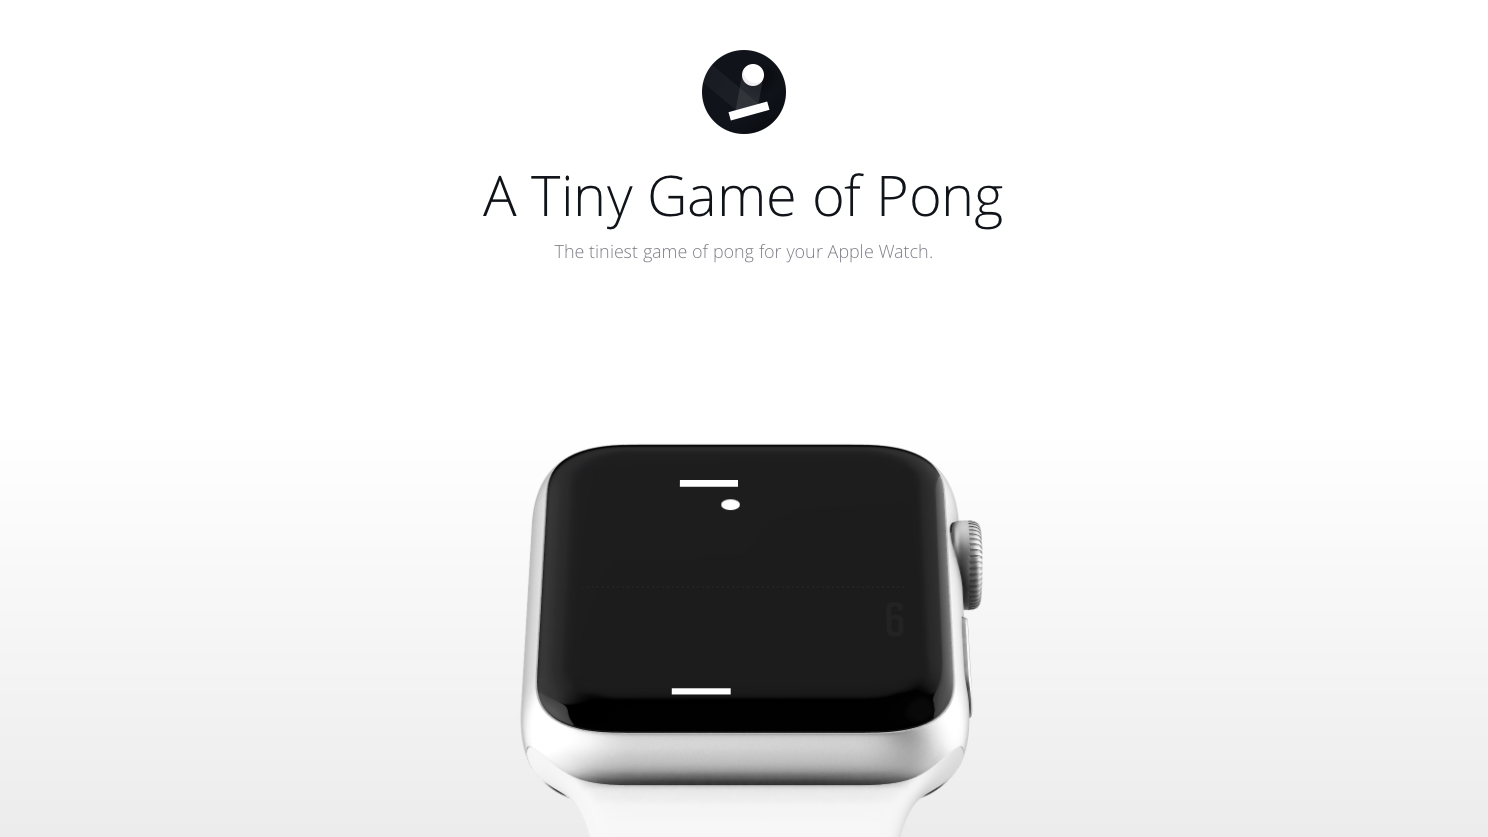 tiny-game-of-pong-featured-image